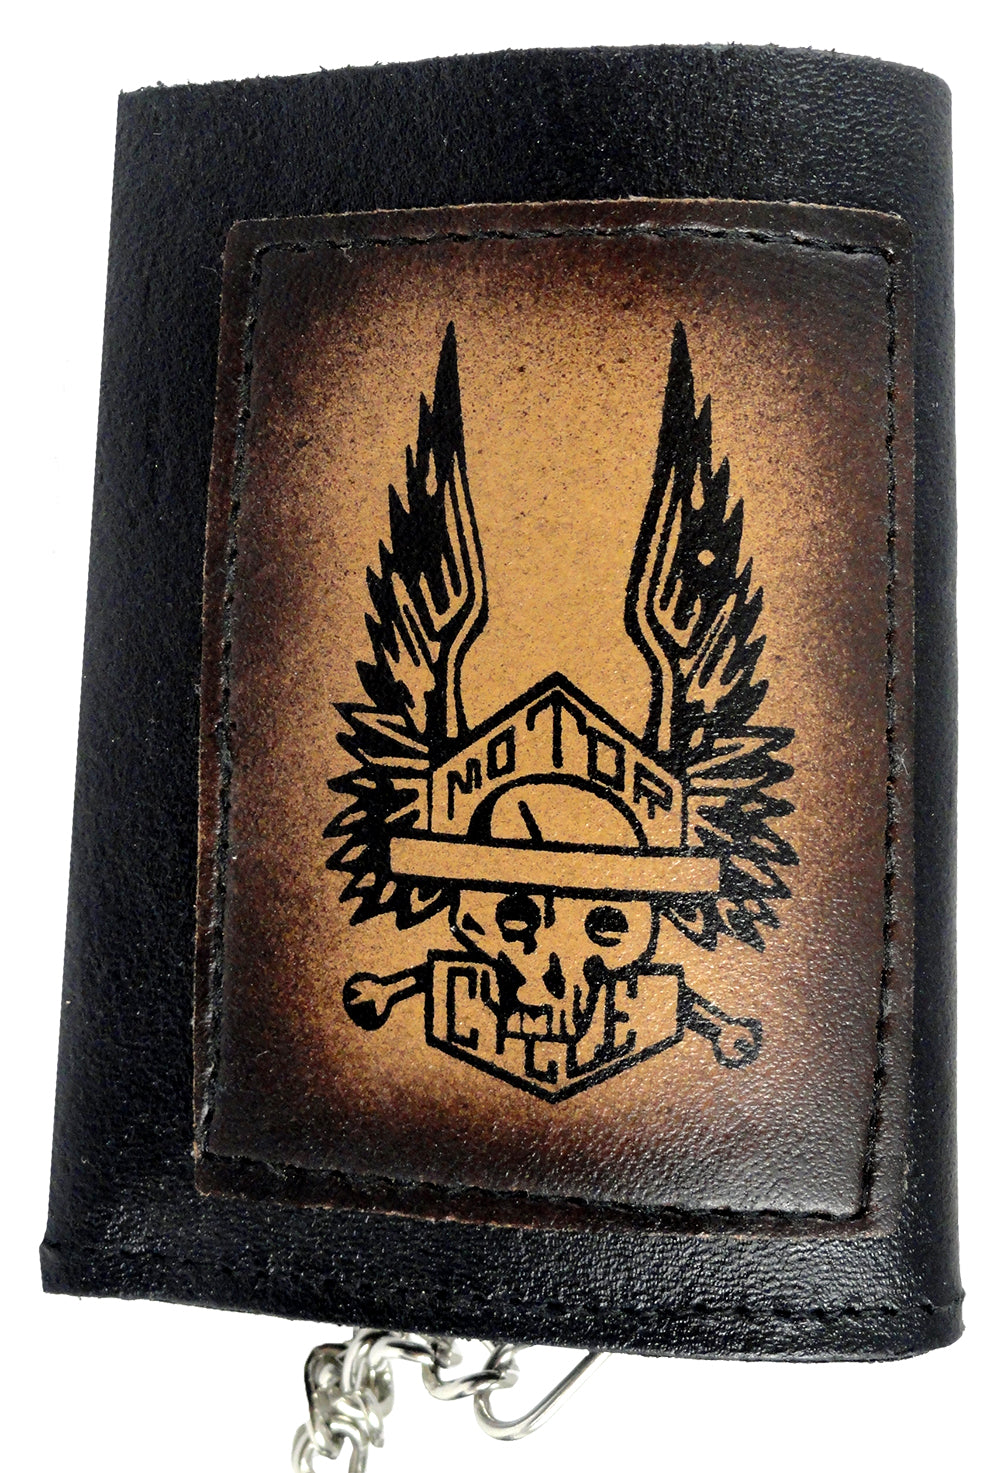 Motor Cycle Skull and Crossbones Leather Chain Wallet